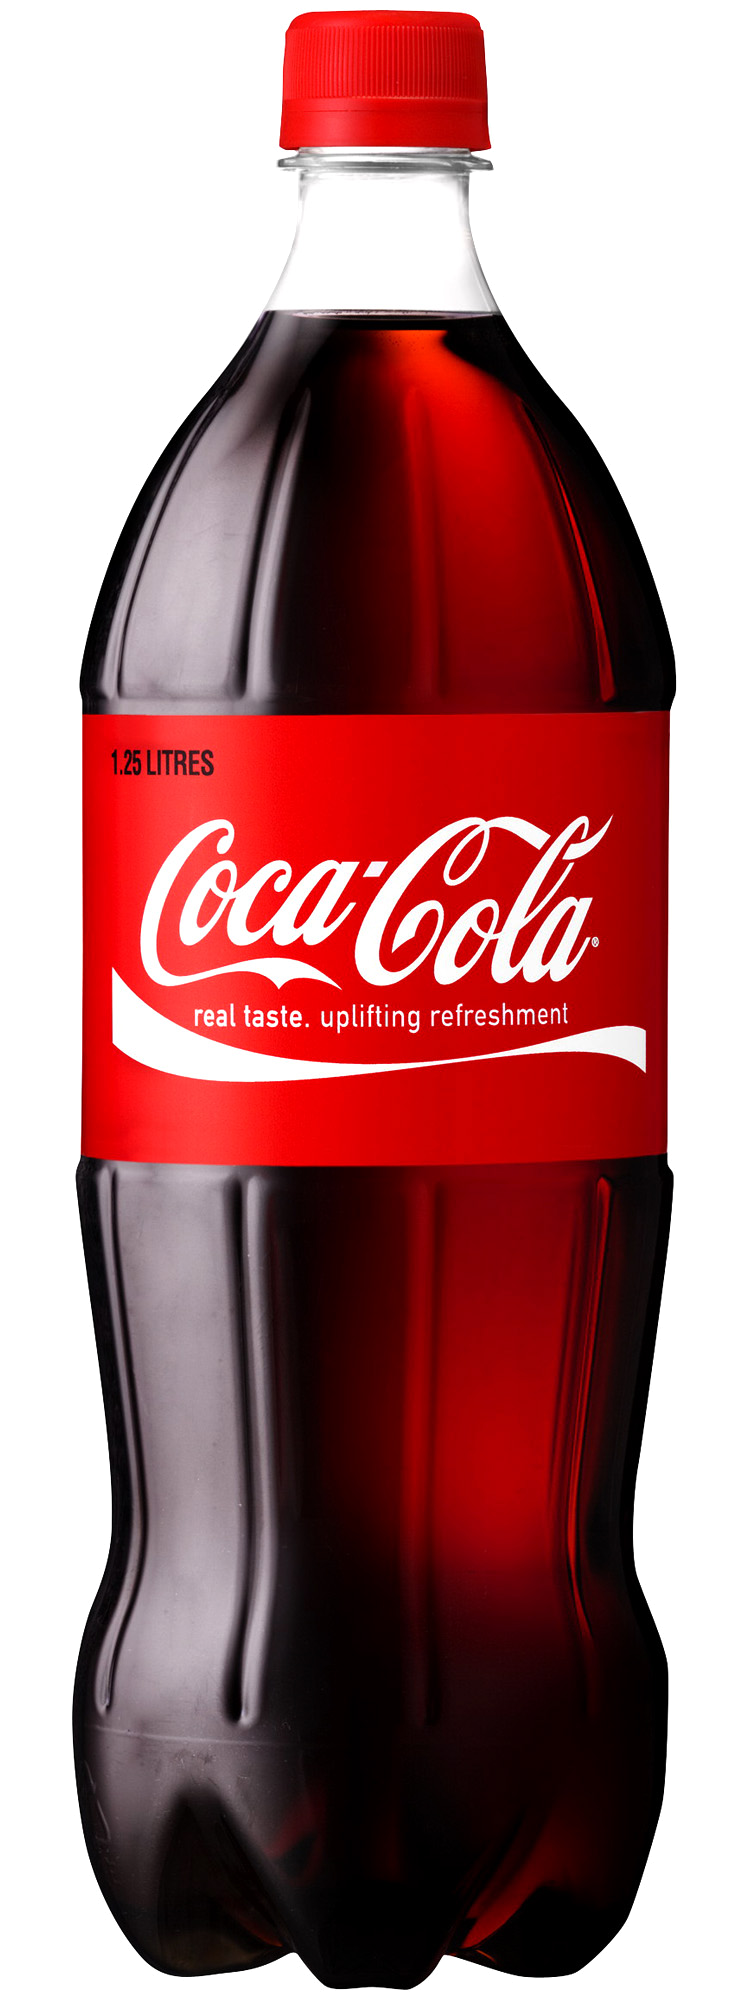 Practical uses for coke. Drinks clipart cold drink bottle